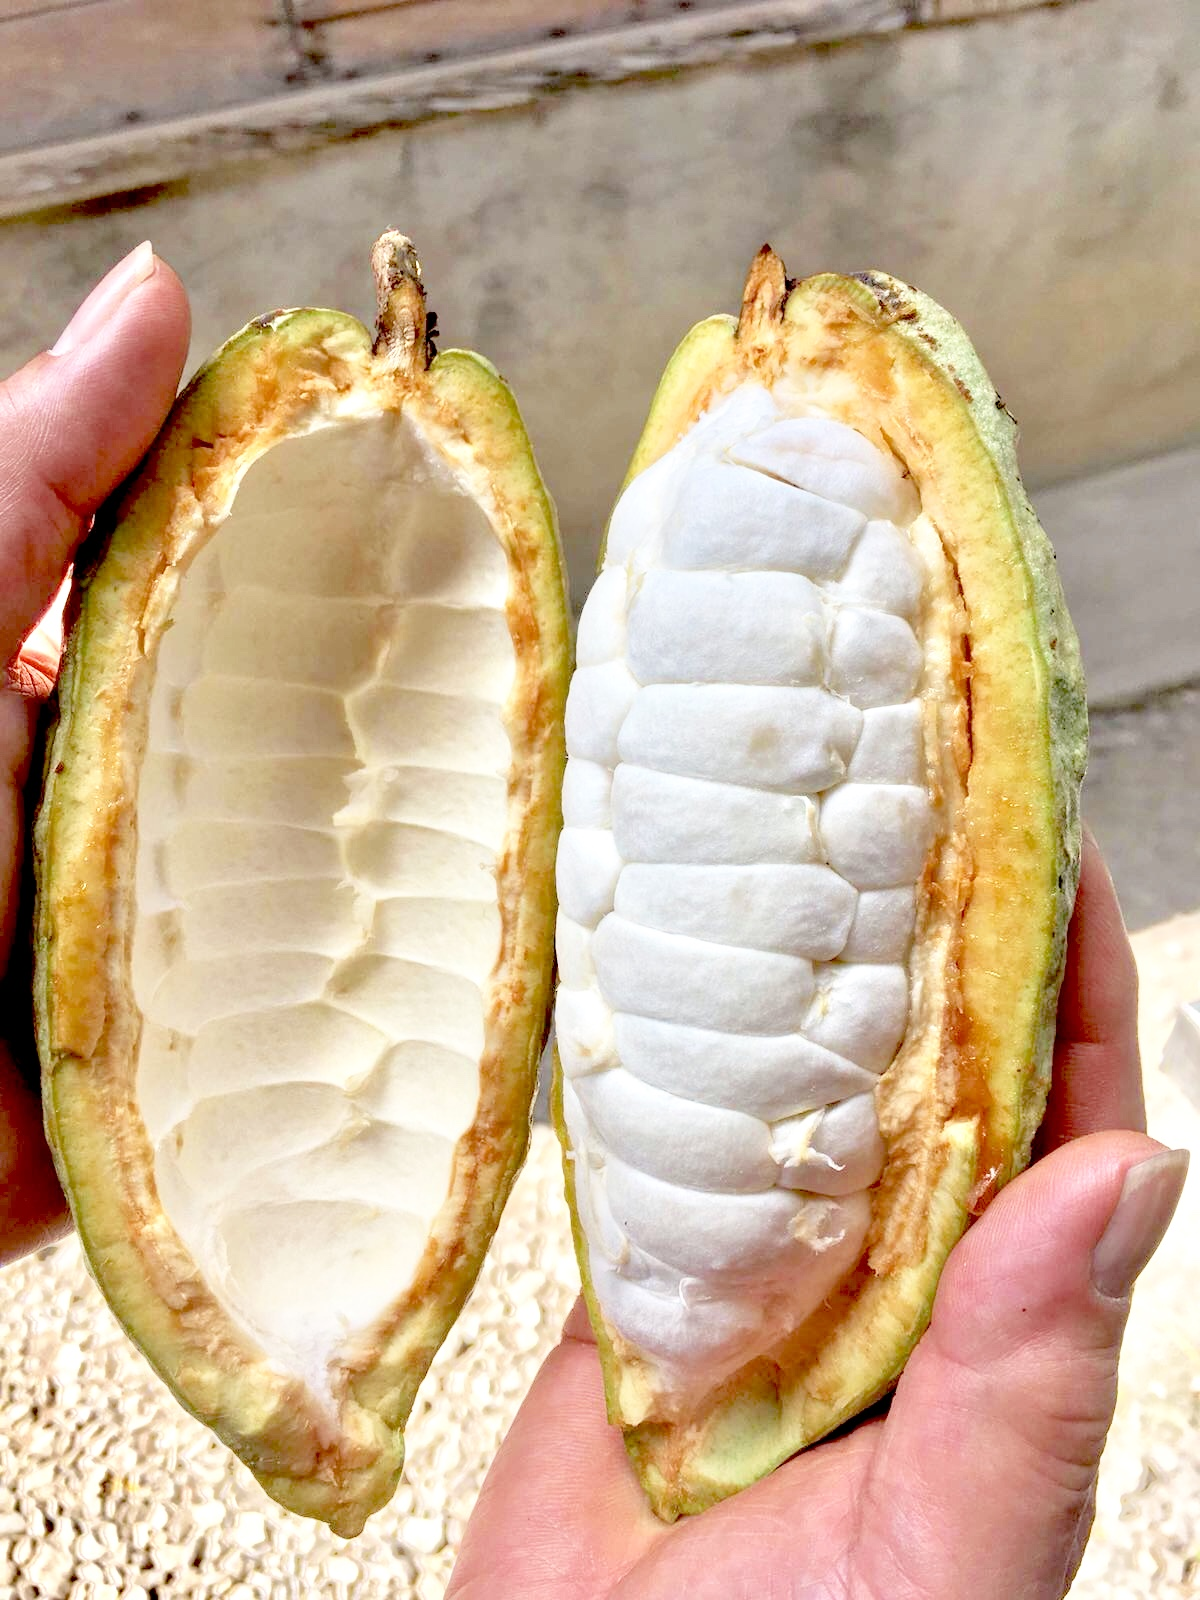 Image from Chocolate with Geoseph. Opened cacao pod from Philippines displaying fruit. Each segment of fruit surrounds a cacao seed. The seed is used to make chocolate.